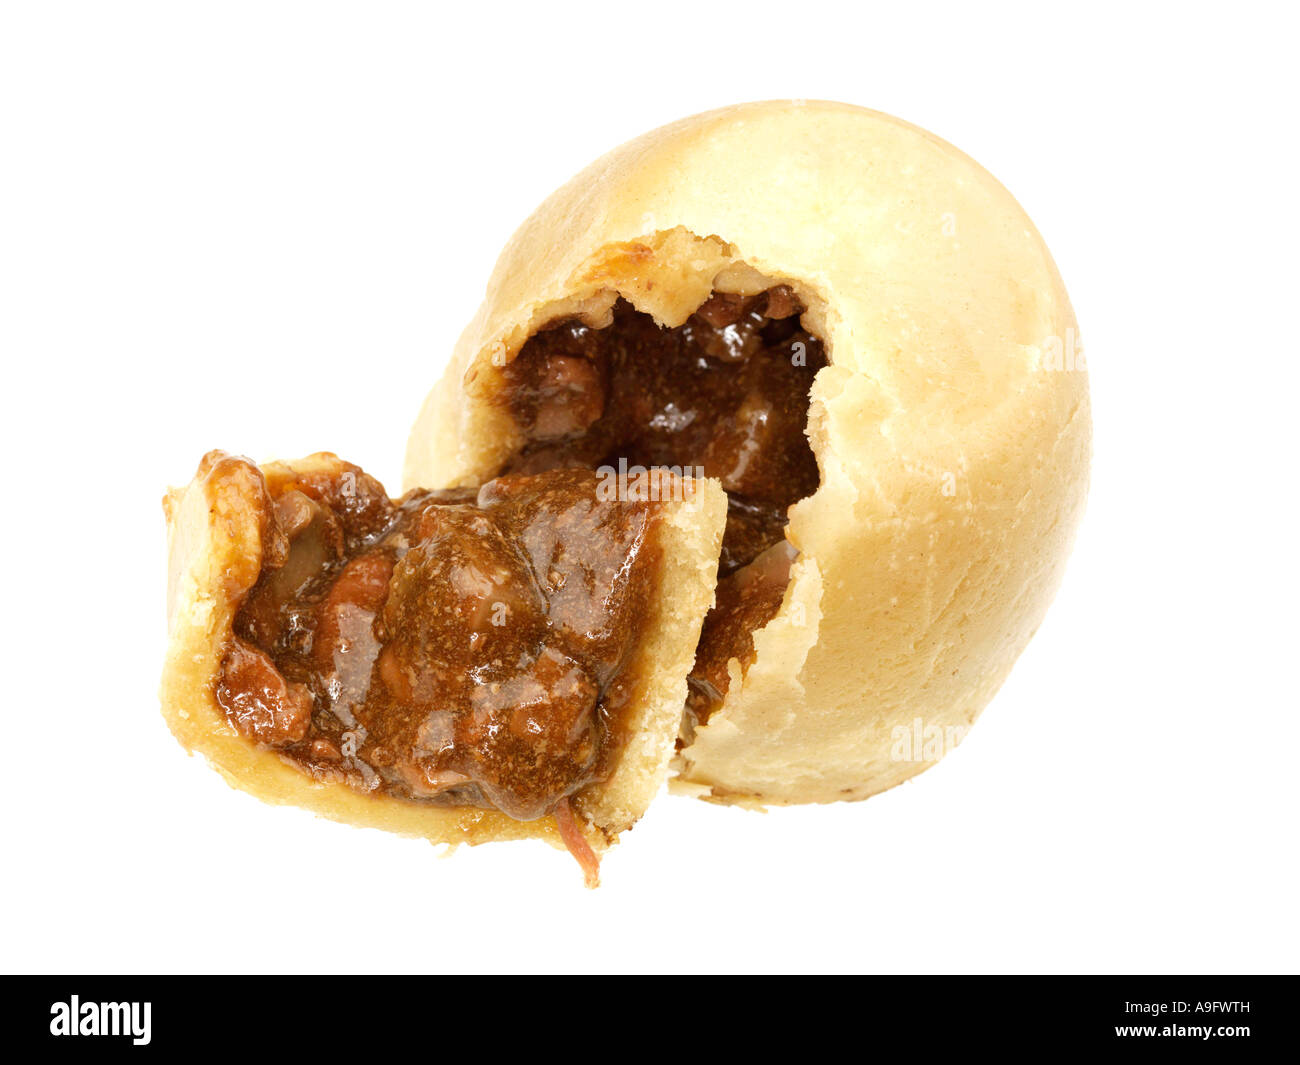 Steak Niere Suet Pudding Stockfotografie Alamy